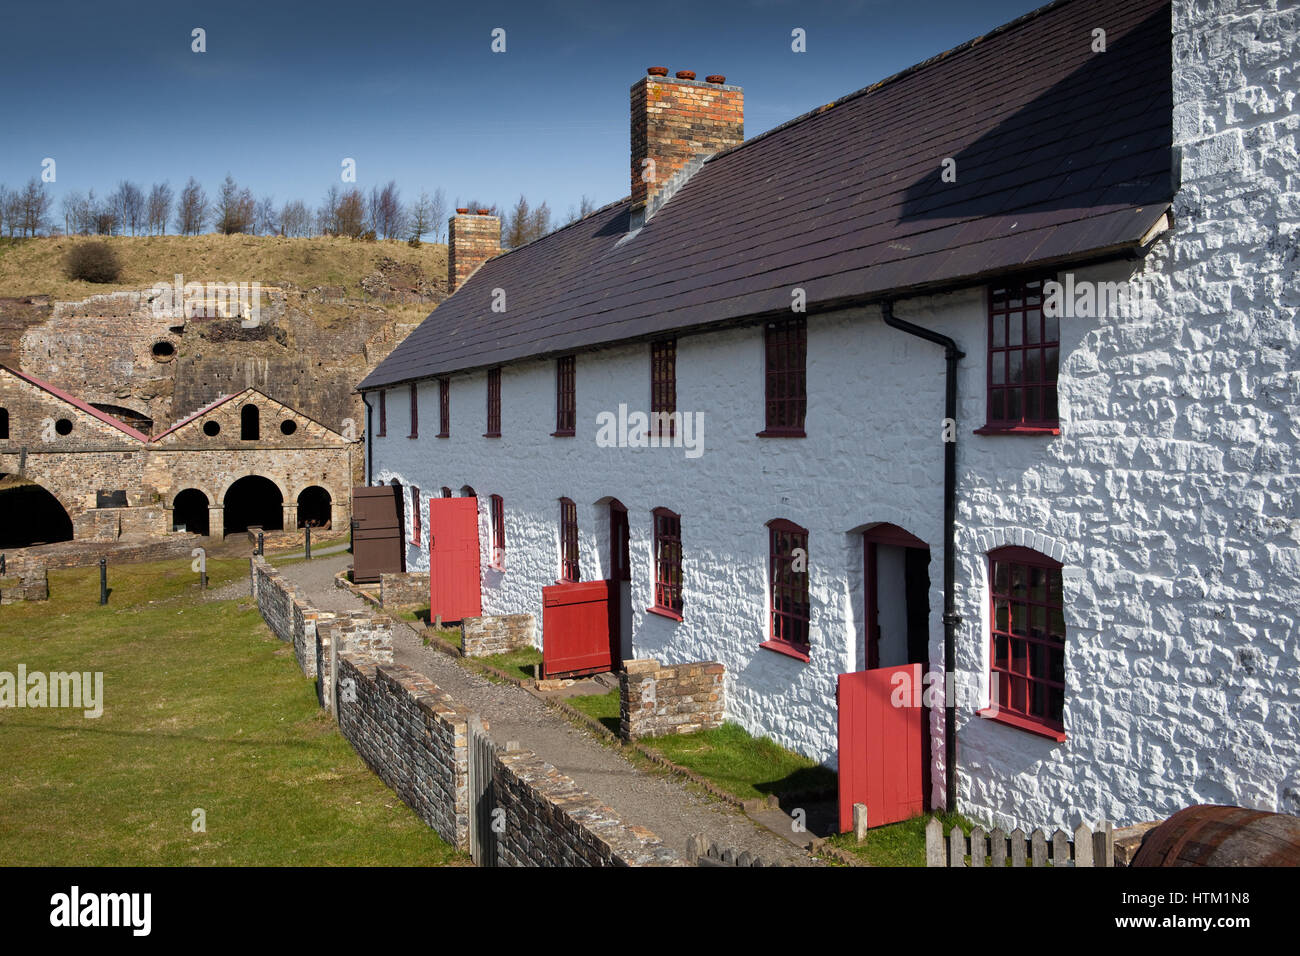 Stack Square cottages at Blaenavon Ironworks, Blaenavon, a World Heritage Site in Wales, United Kingdom Stock Photo